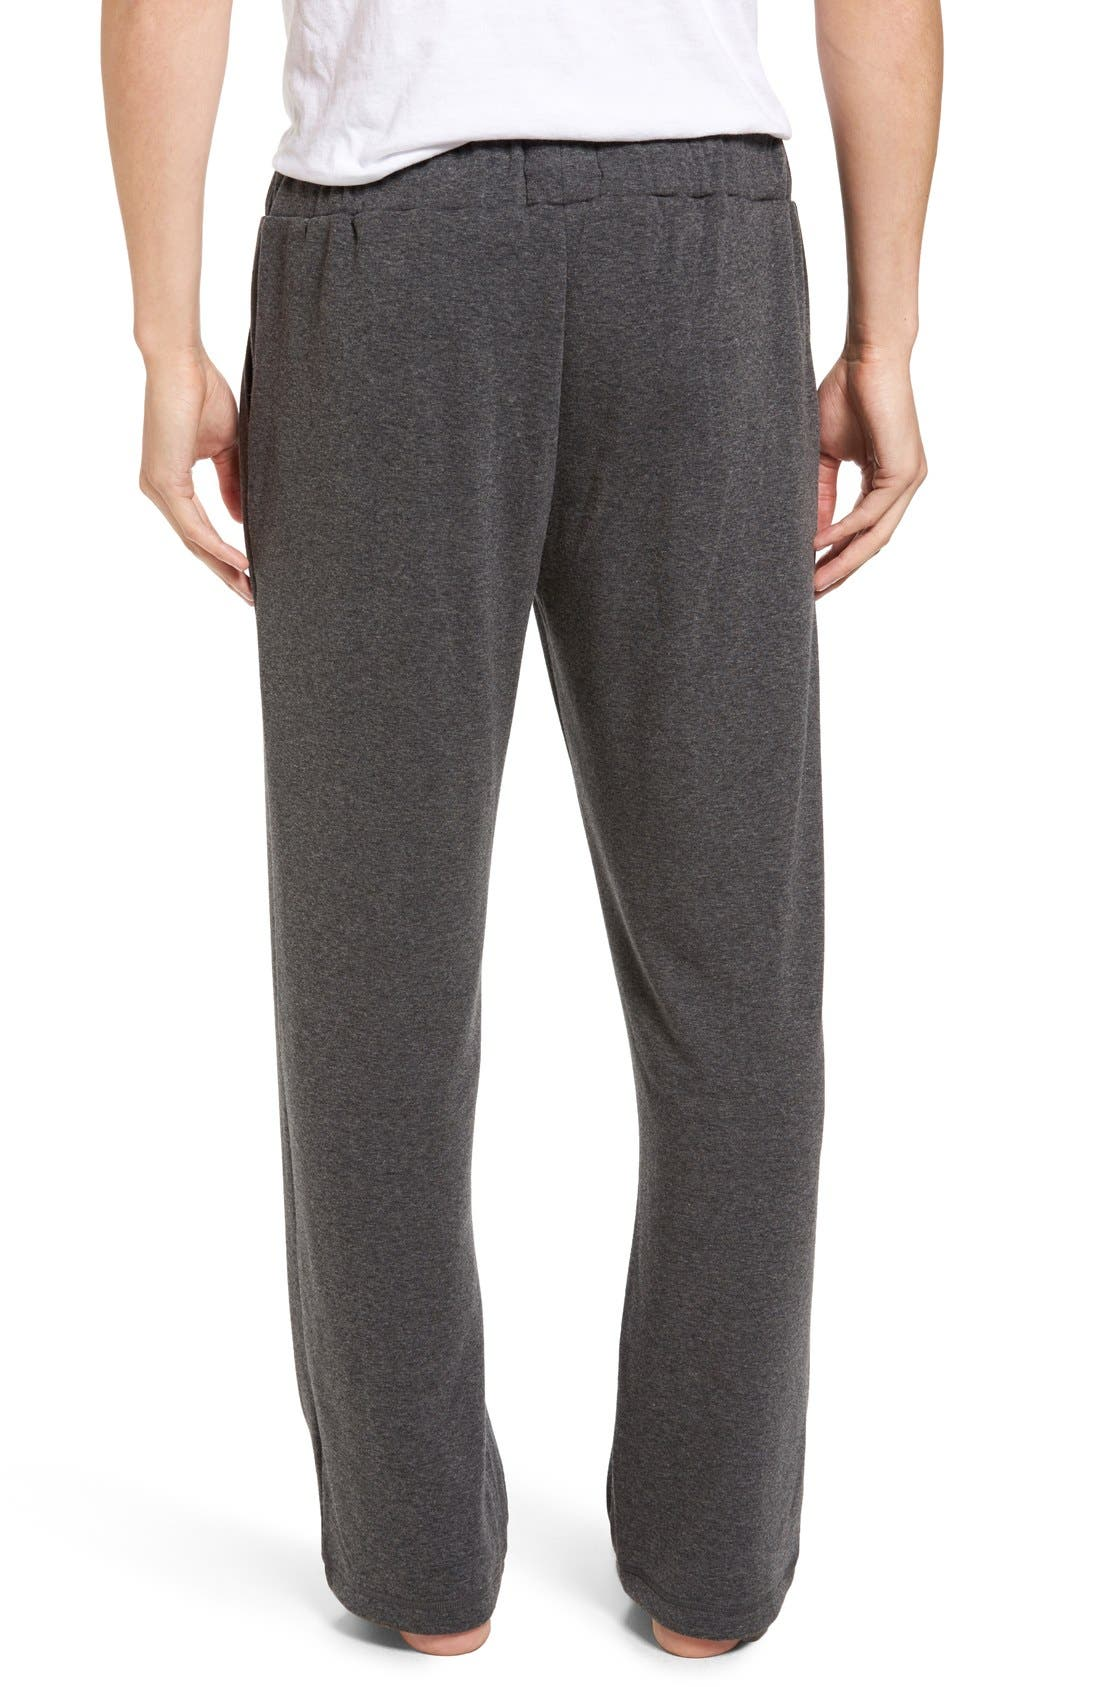 Fleece Lounge Pants,                             Alternate thumbnail 2, color,                             Grey Heather